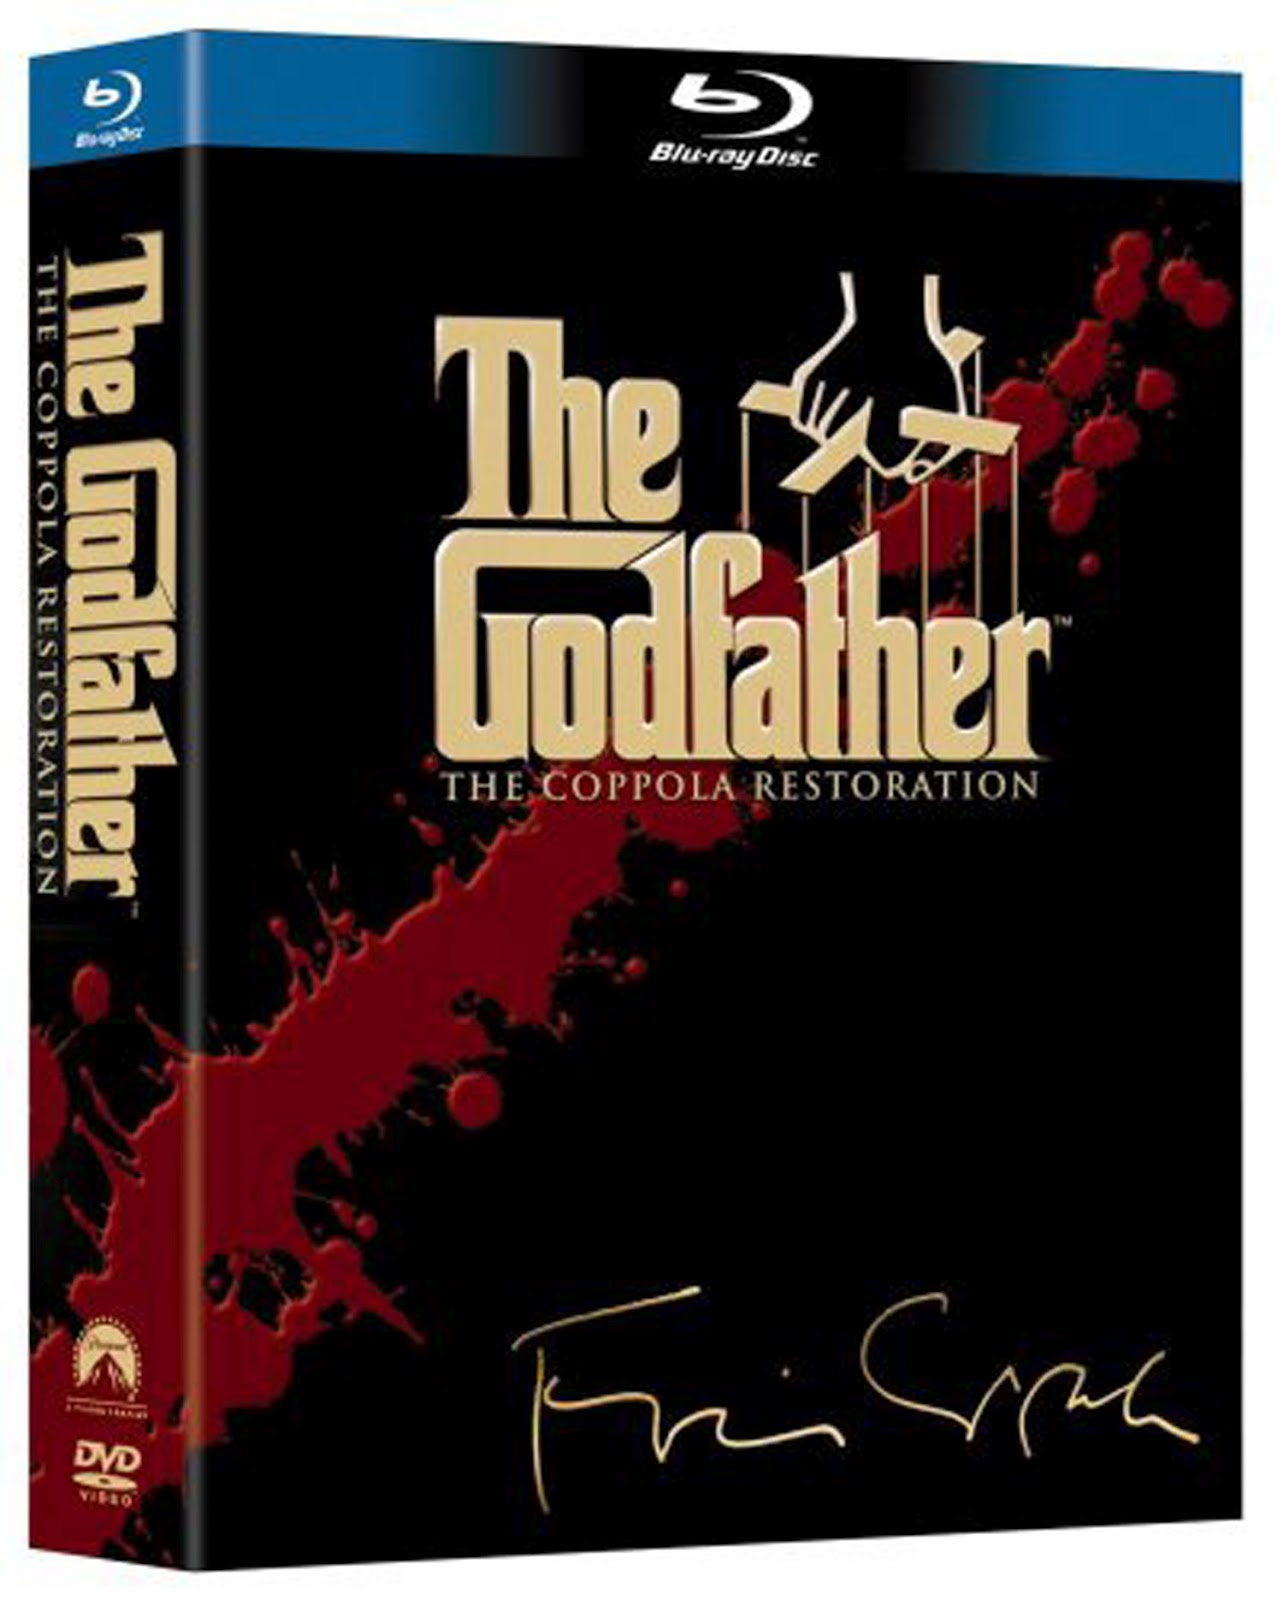 The Godfather1 Blu-ray DVD Case